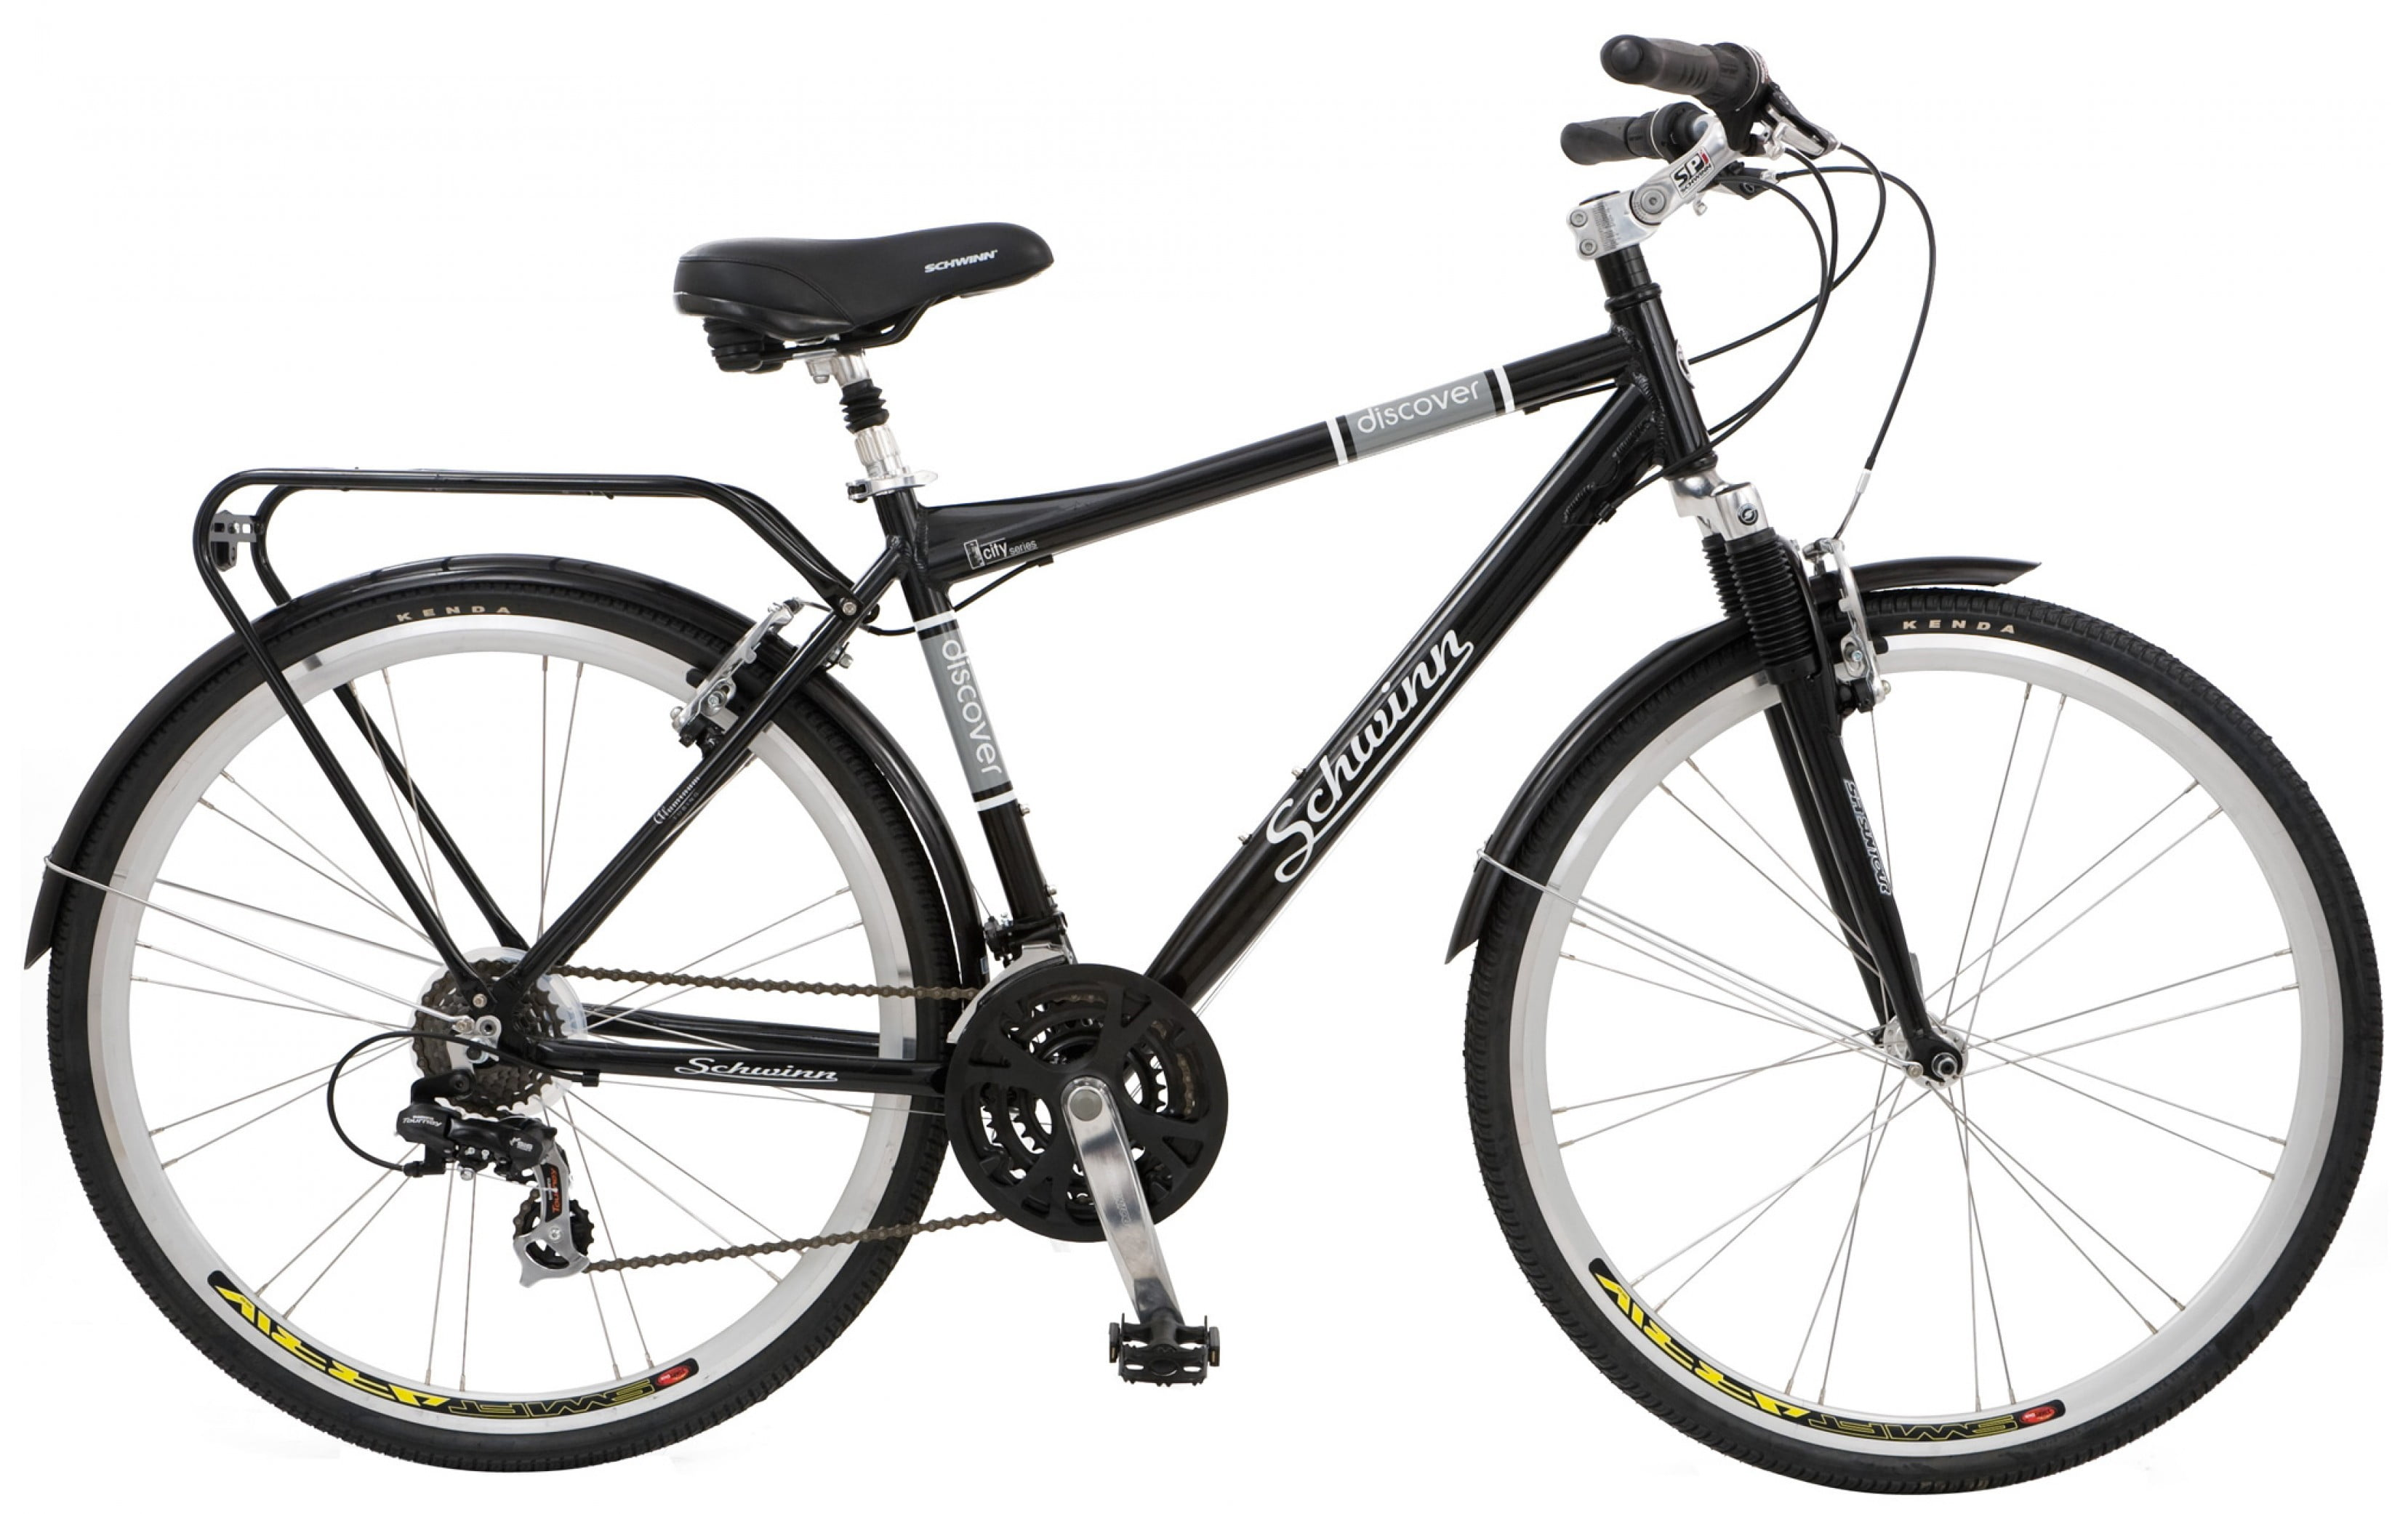 Schwinn Discover 700c Hybrid Bicycle with Full Fenders and Rear Cargo Rack